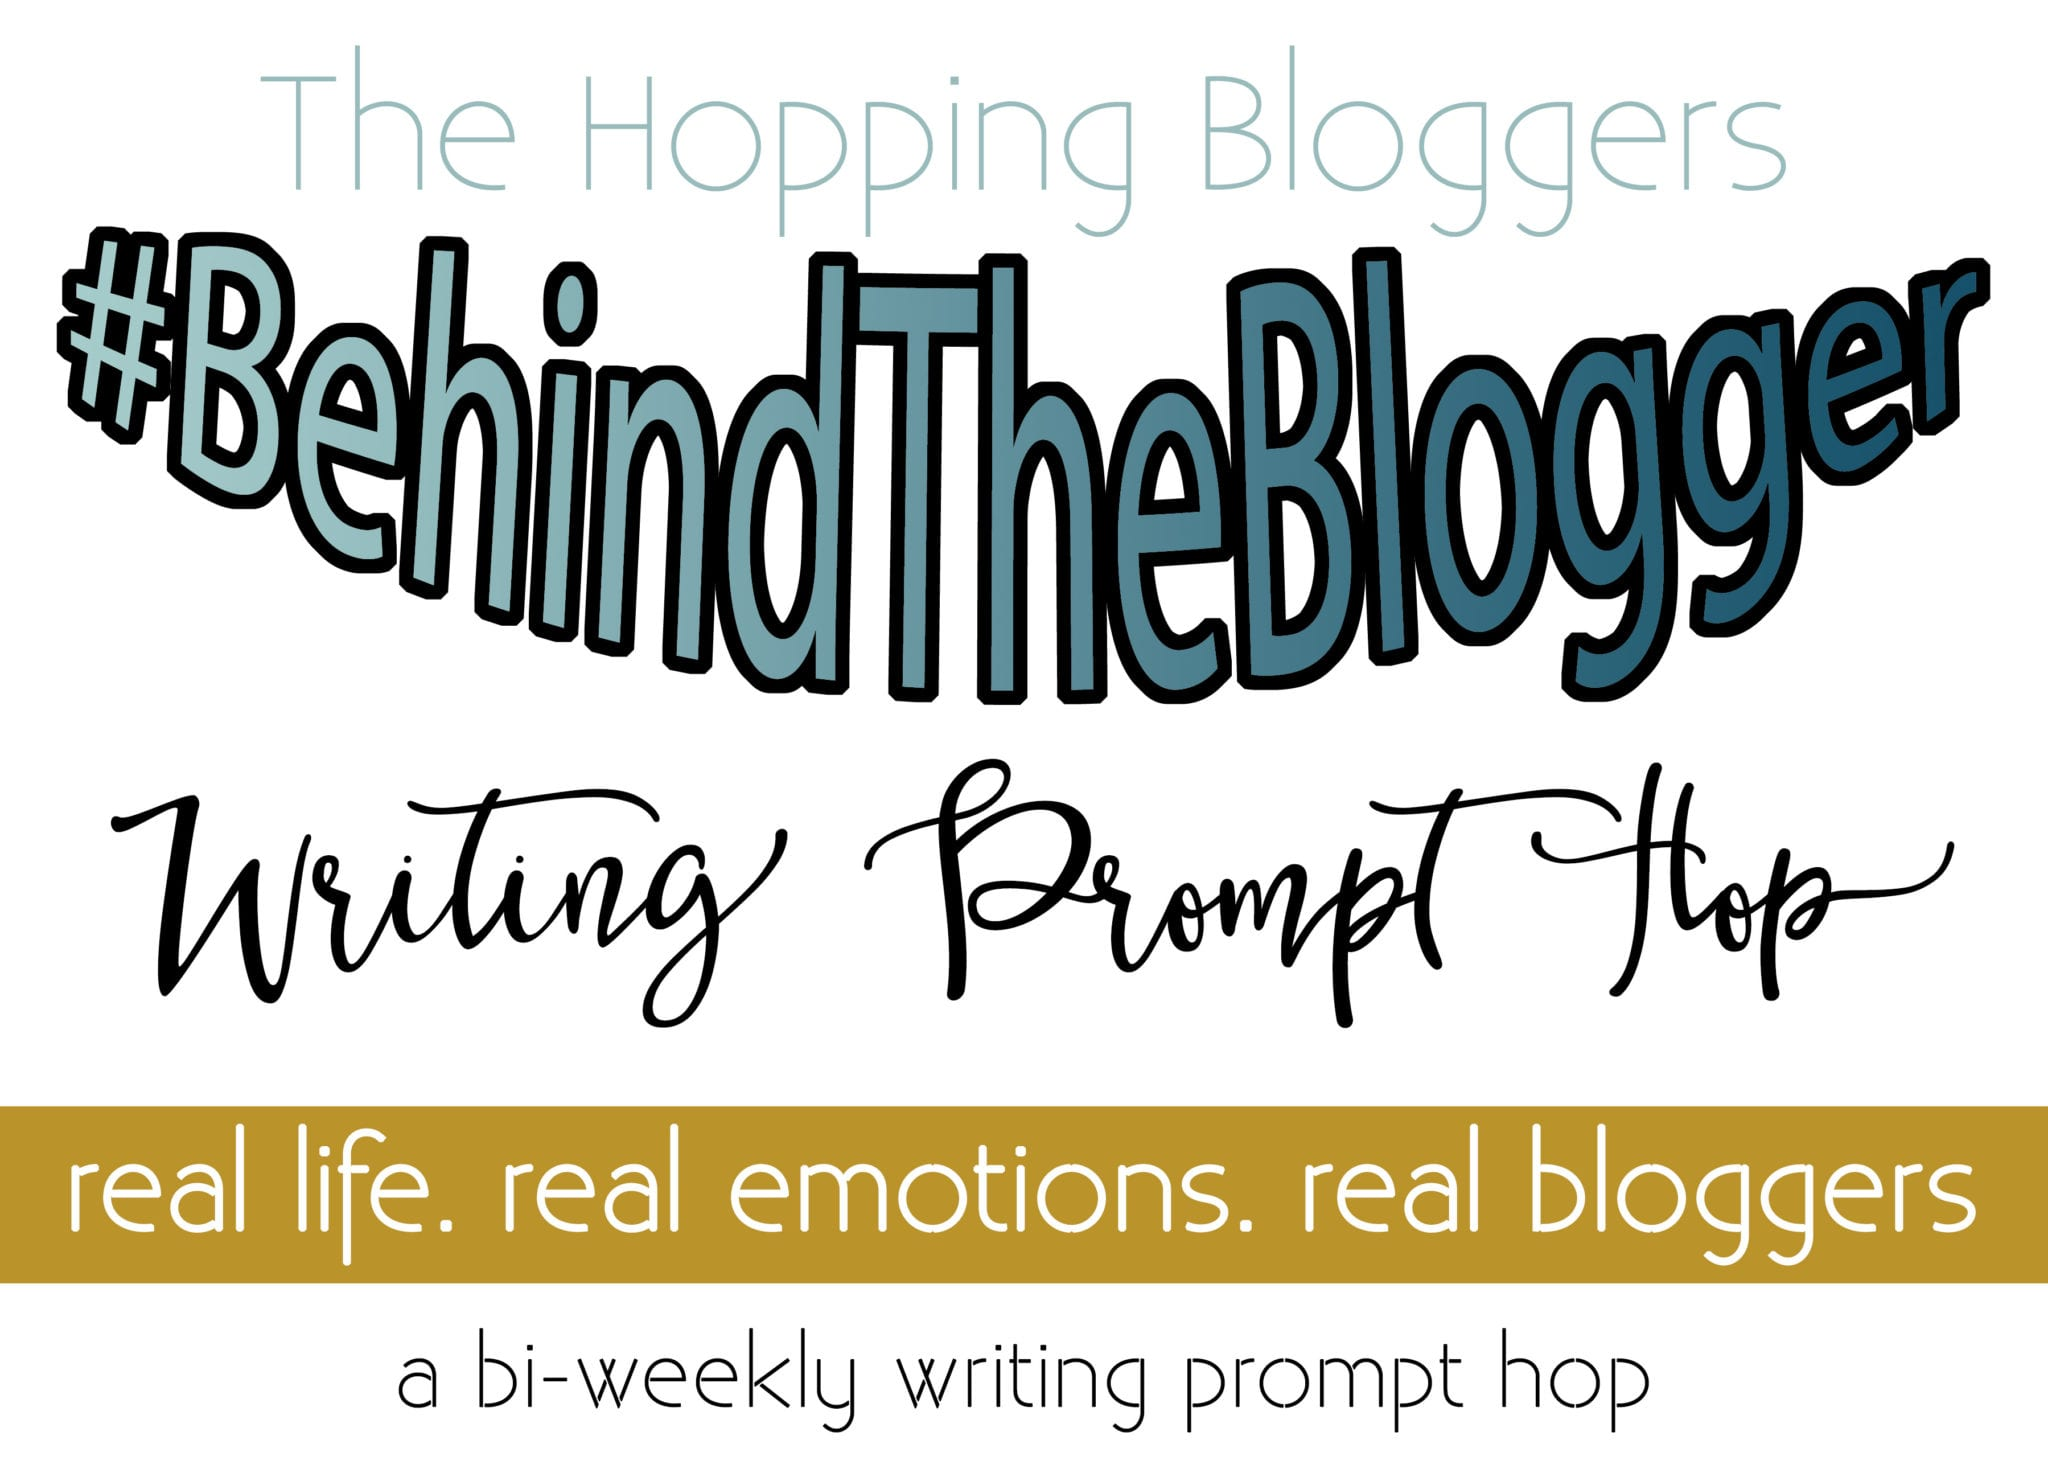 #BehindTheBlogger What Separates Us